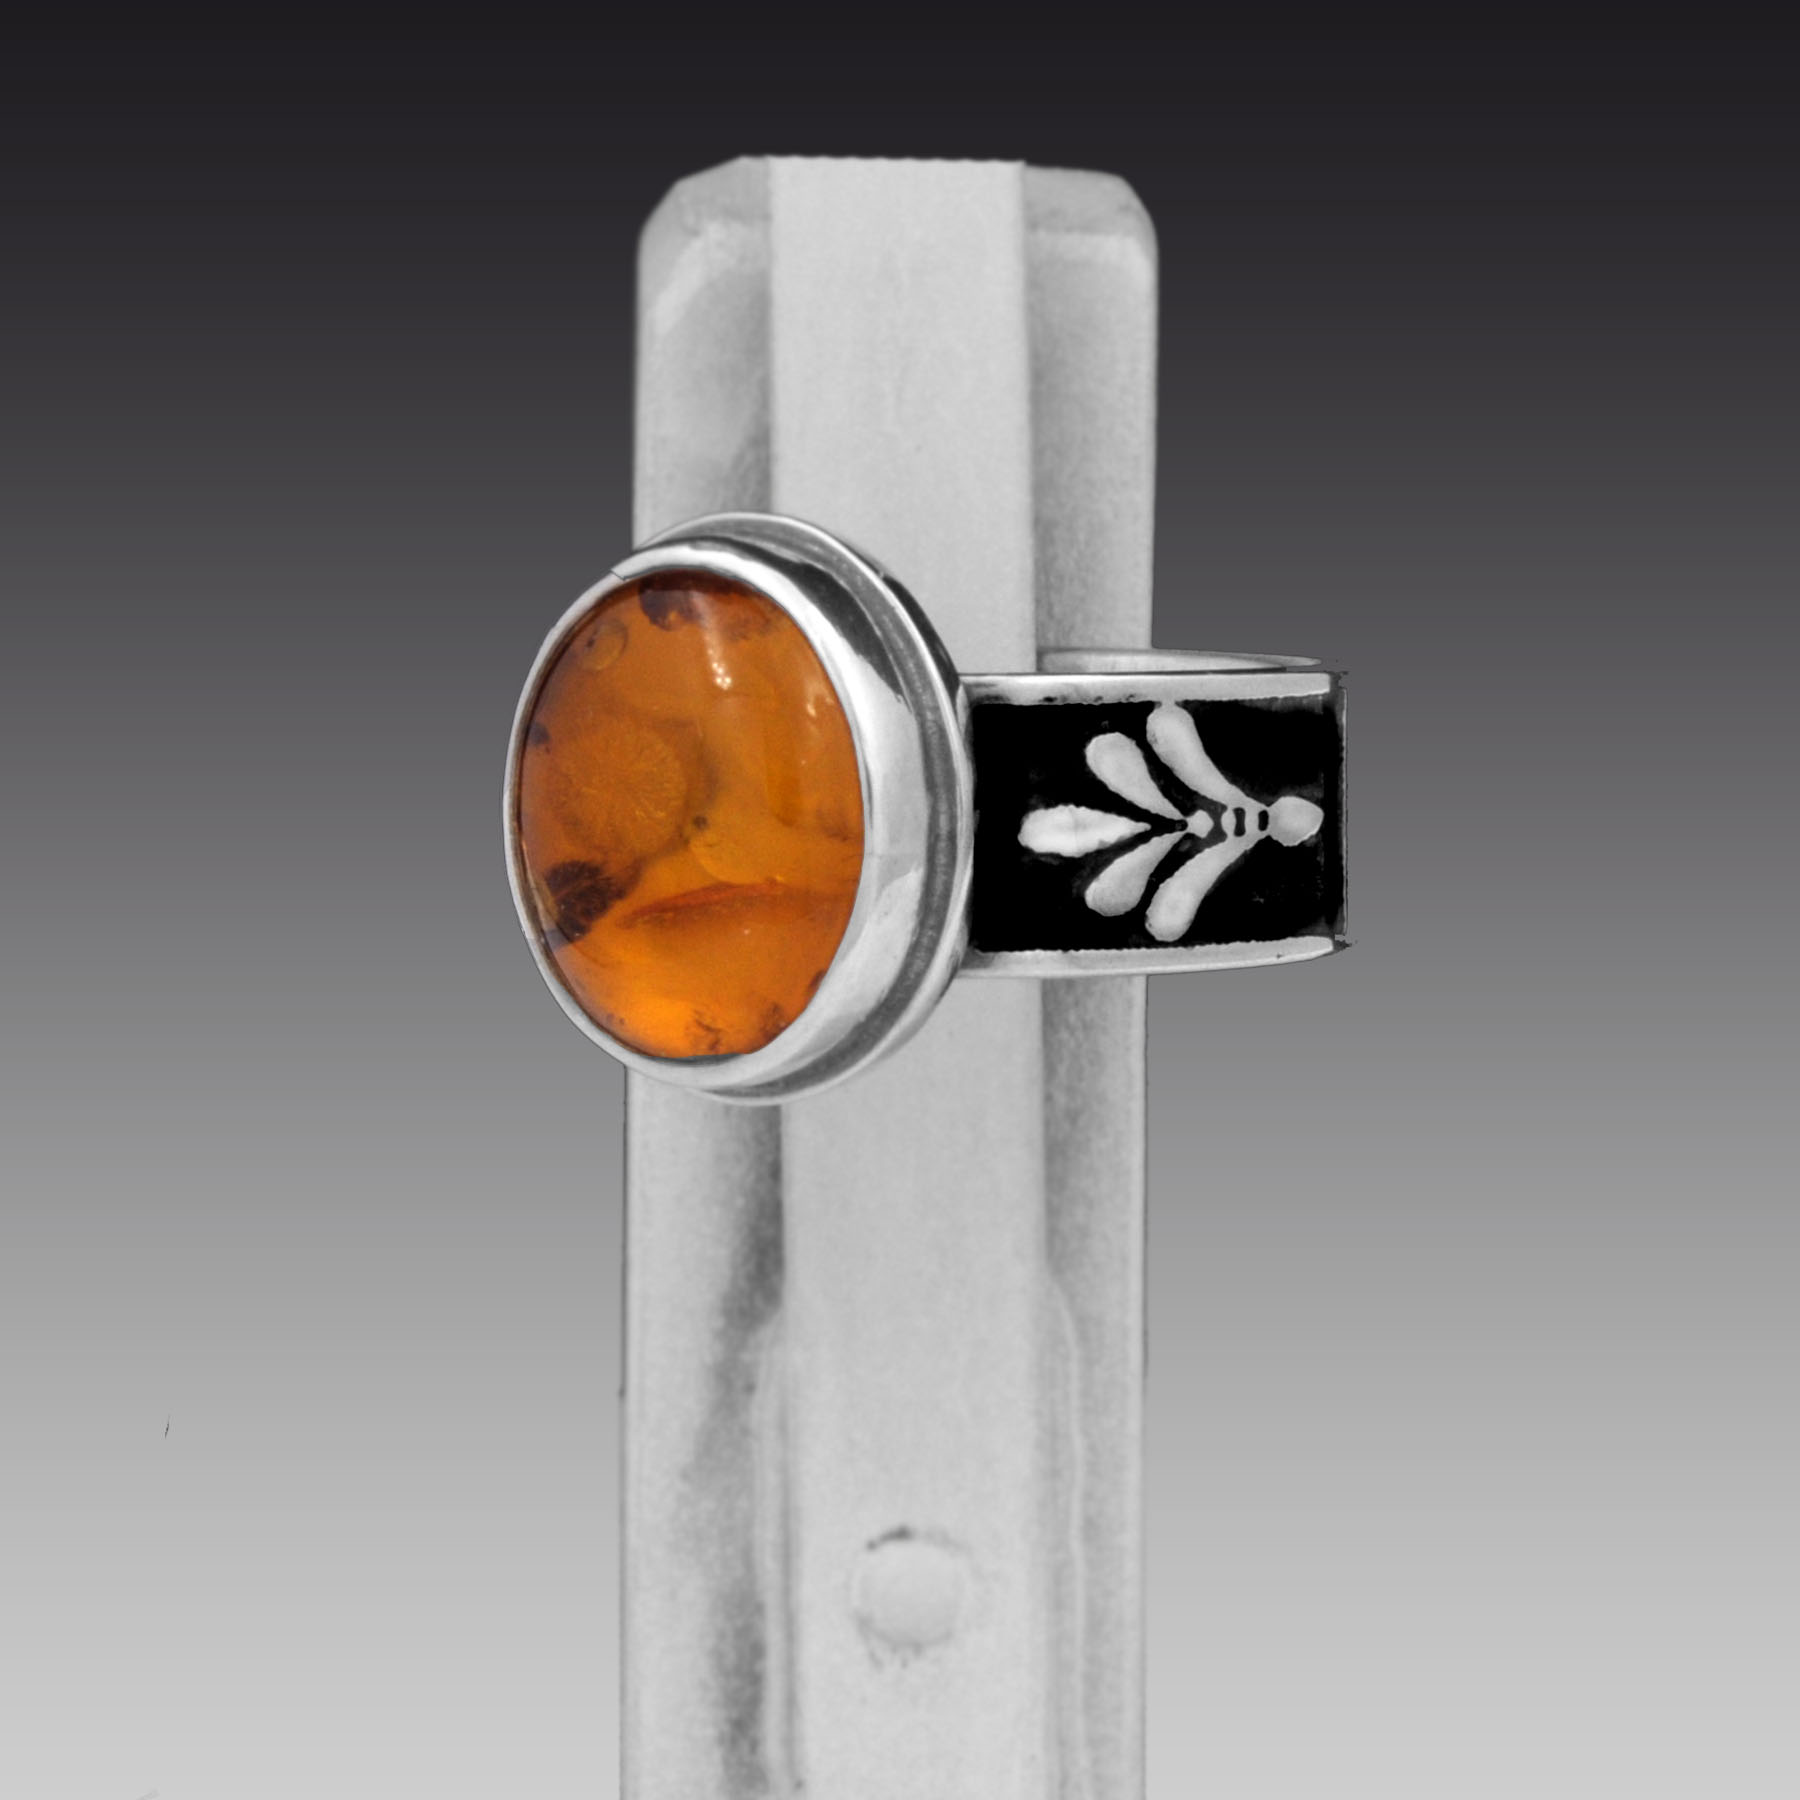 Baltic Amber Ring, Size 5 ½,  935 Argentium Sterling Silver, Baltic Amber,  Handcrafted Art Deco Design by Two Silversmiths